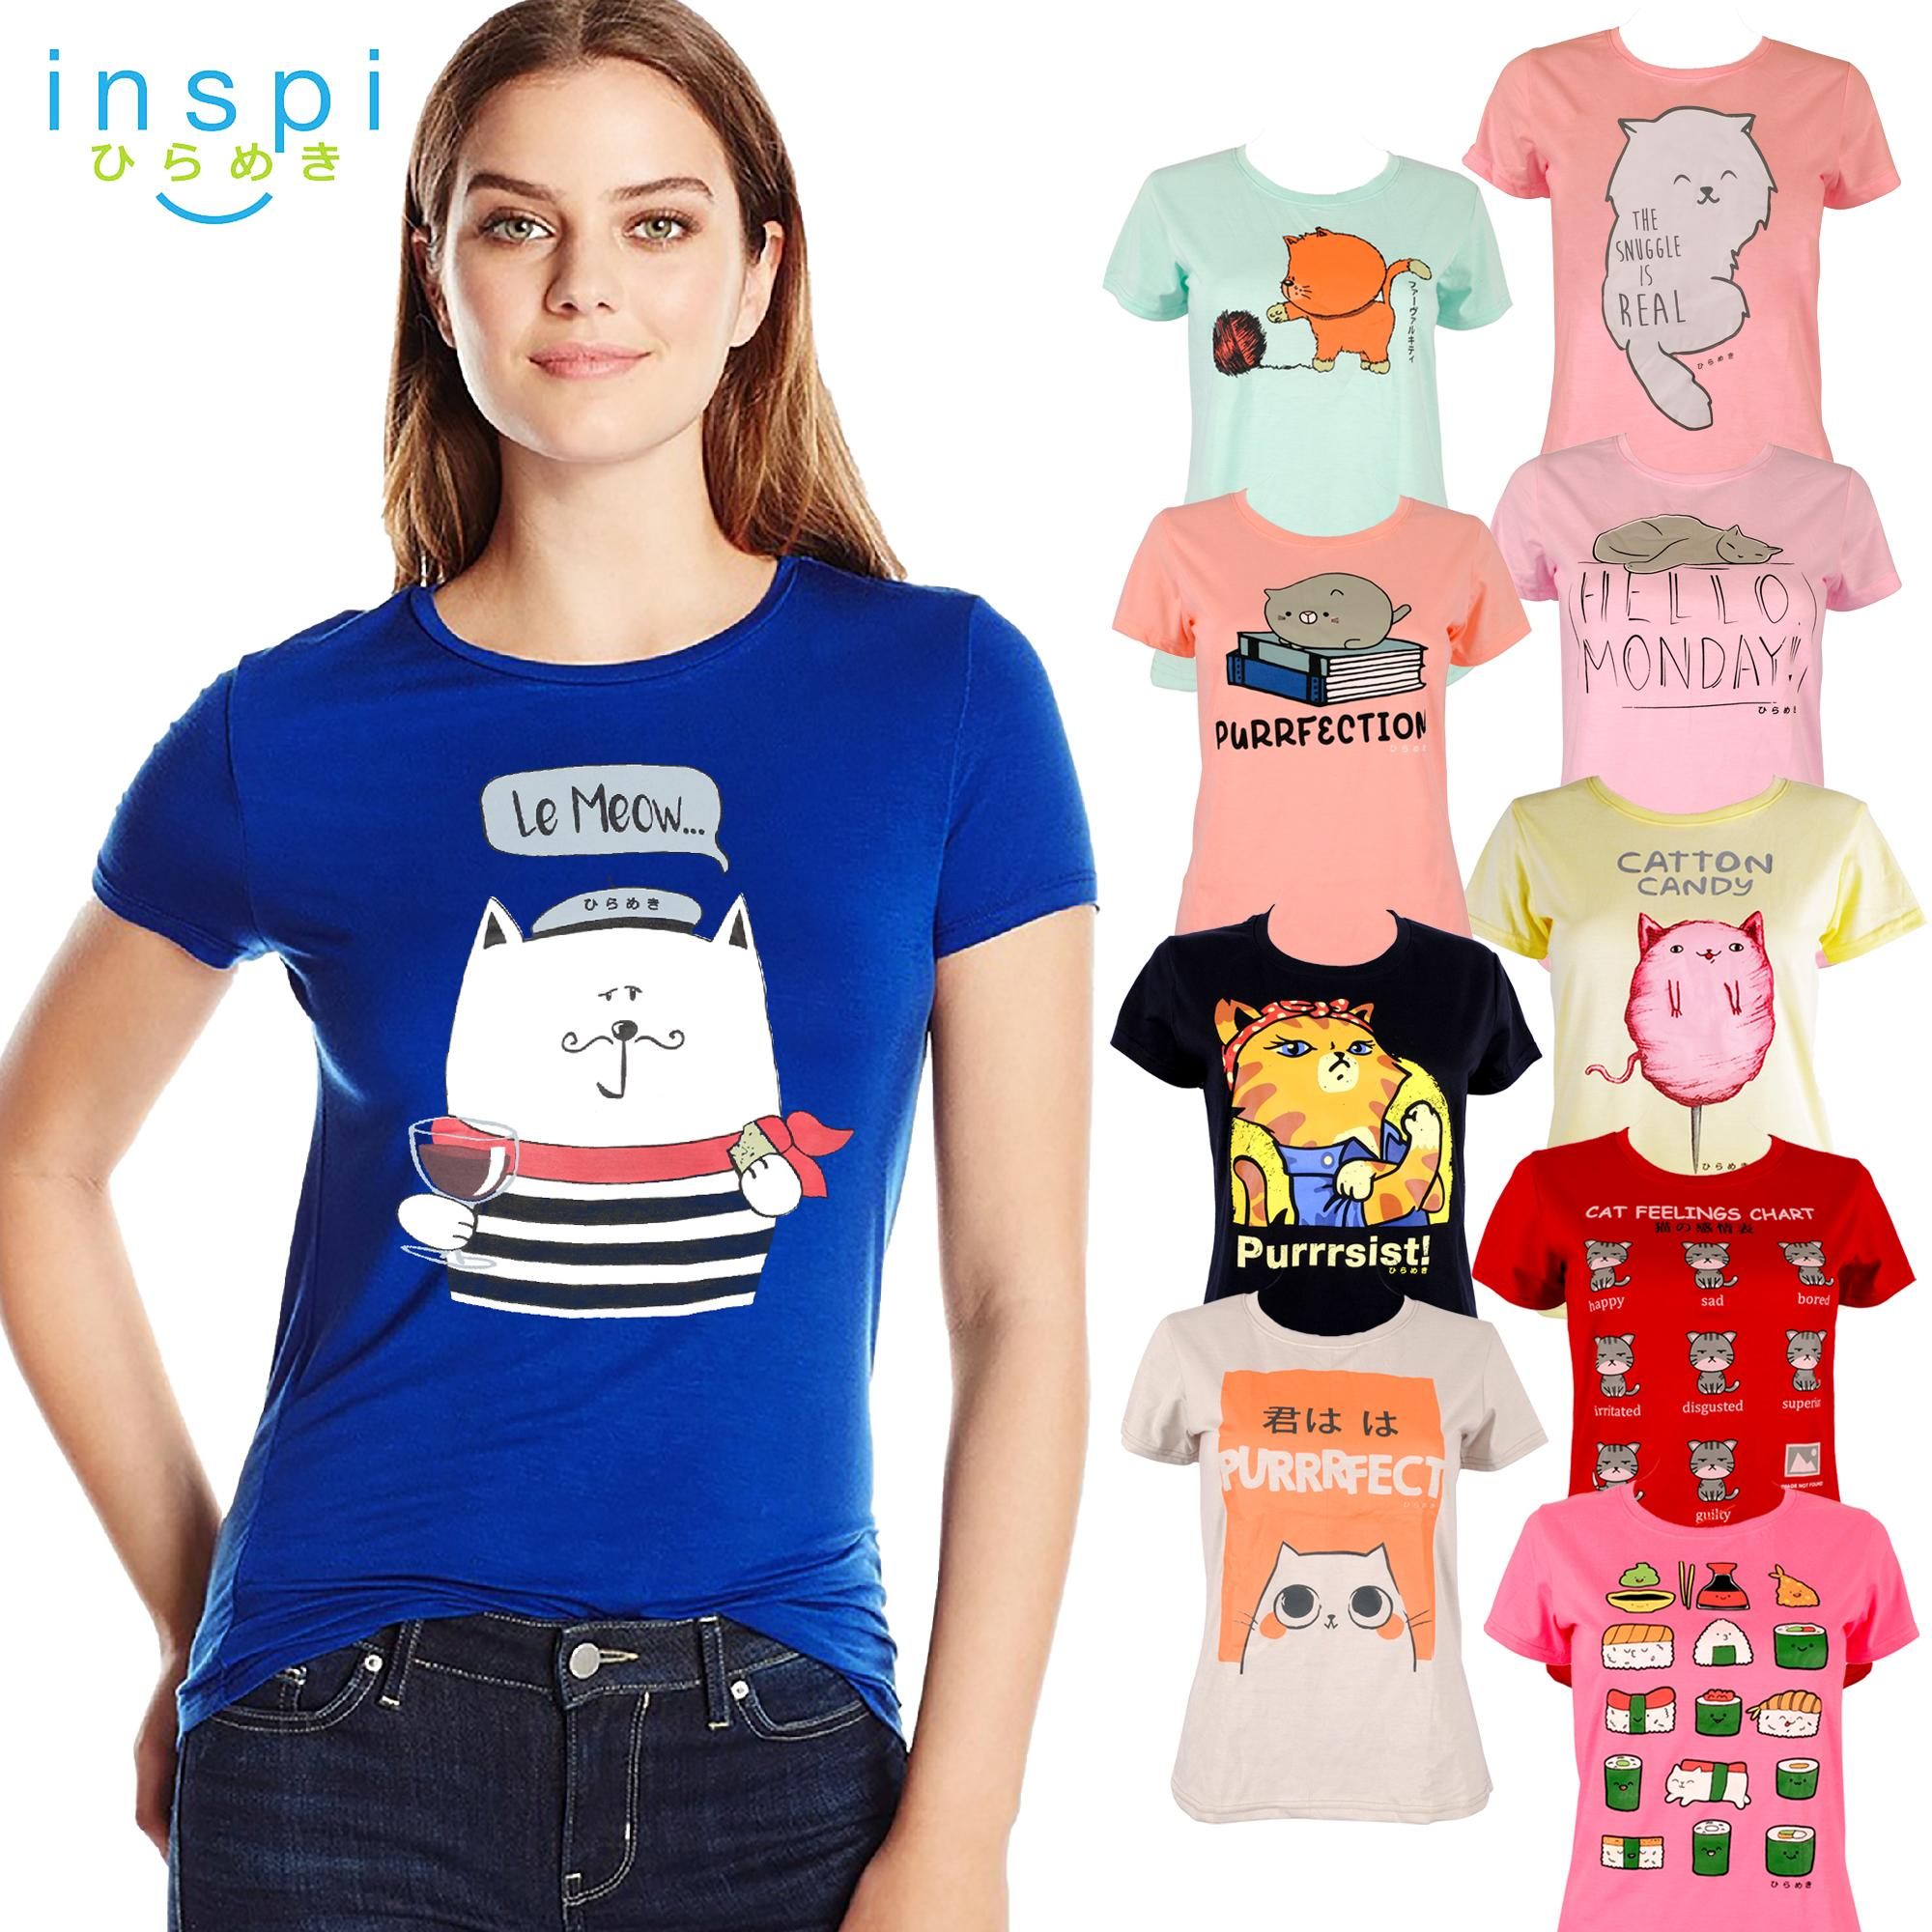 e457fffa INSPI Tees Ladies Neko Collection tshirt printed graphic tee Ladies t shirt  shirts women tshirts for